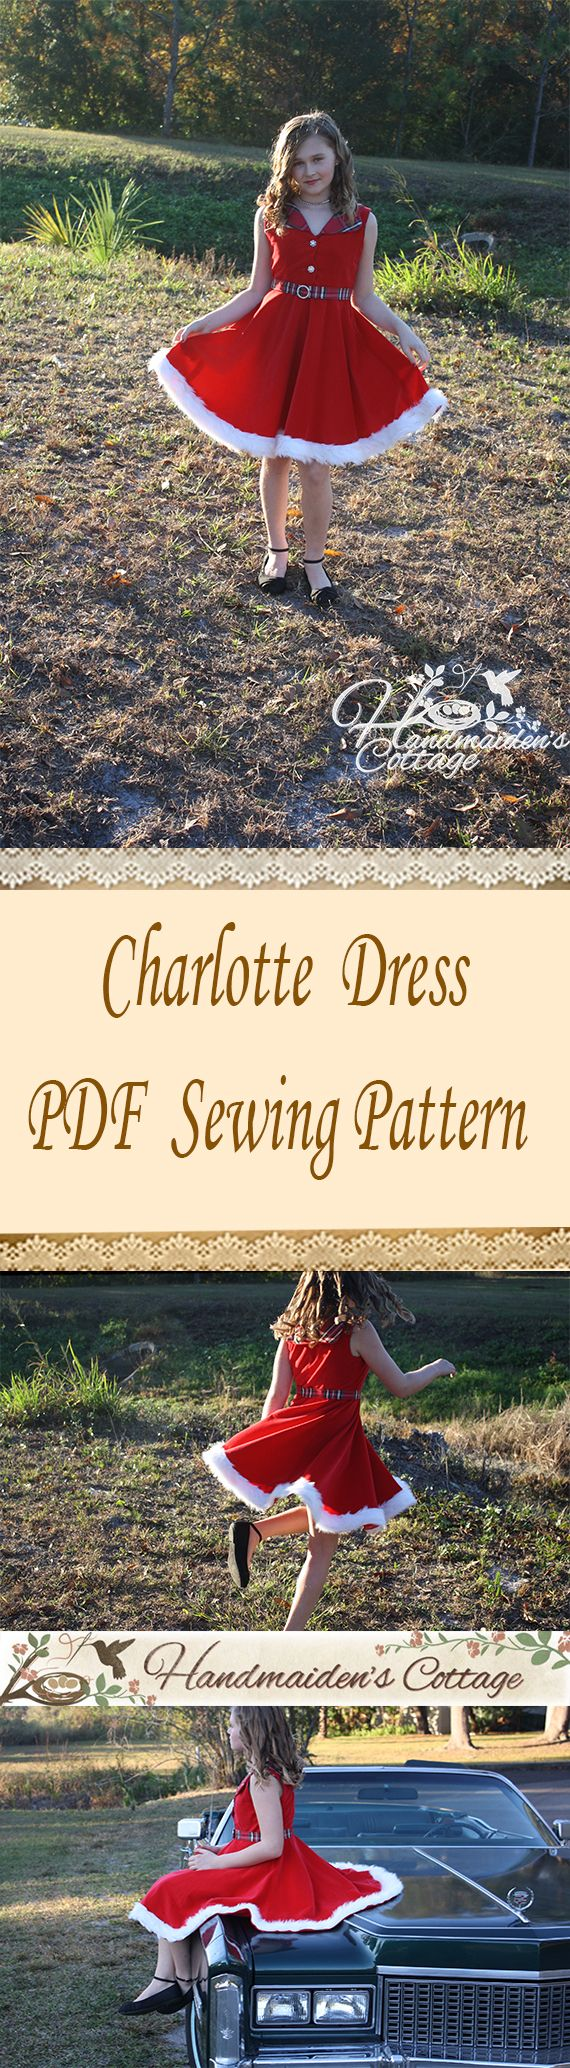 Charlotte Dress Sewing Pattern for girls sizes 3T-10 yrs old.